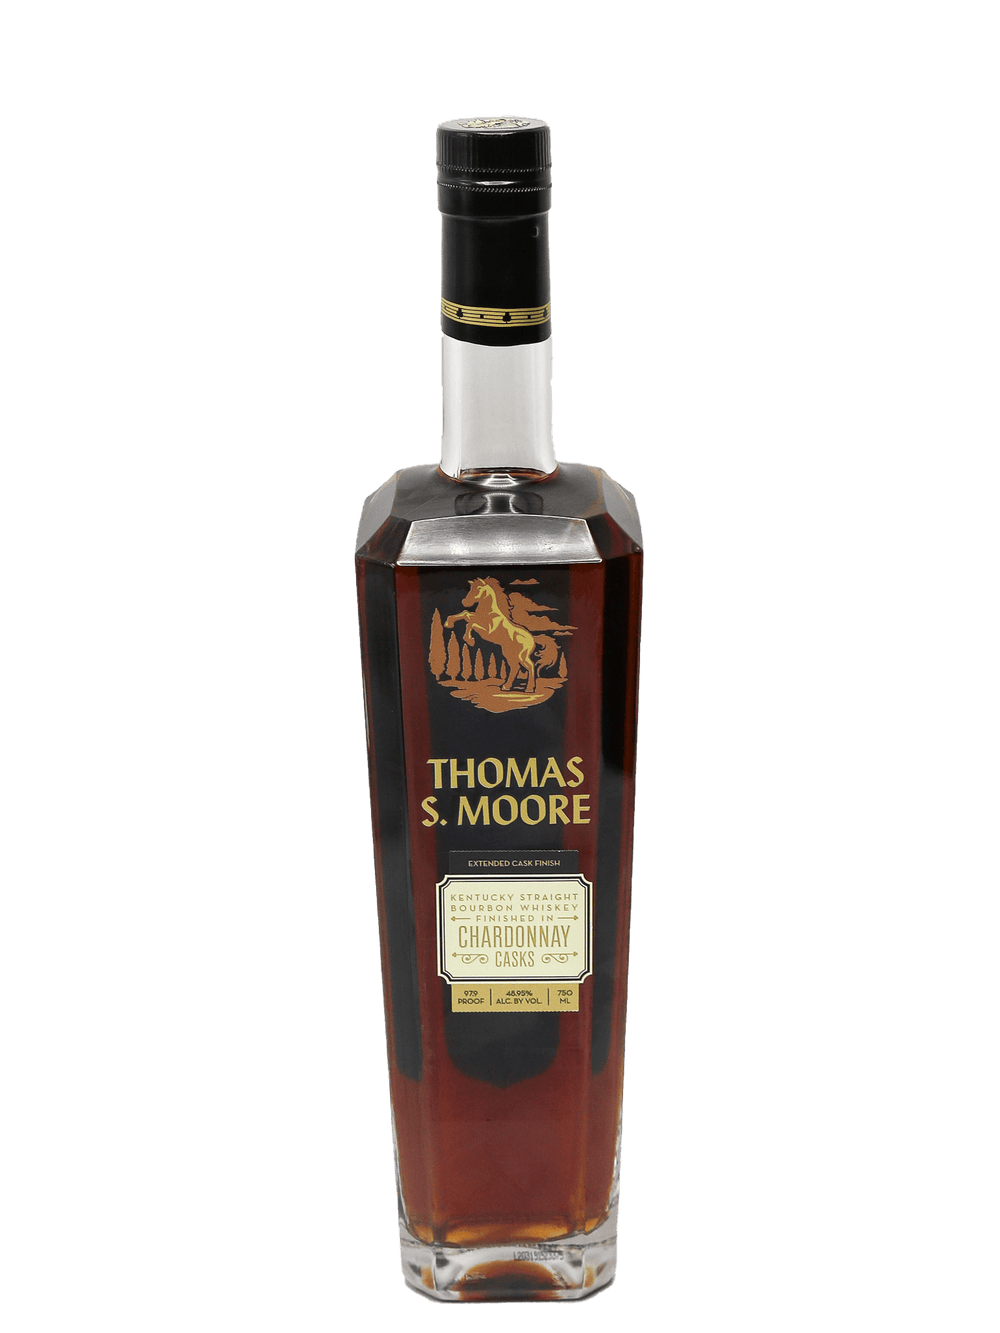 Thomas S. Moore Chardonnay Cask Finish Bourbon 750ml